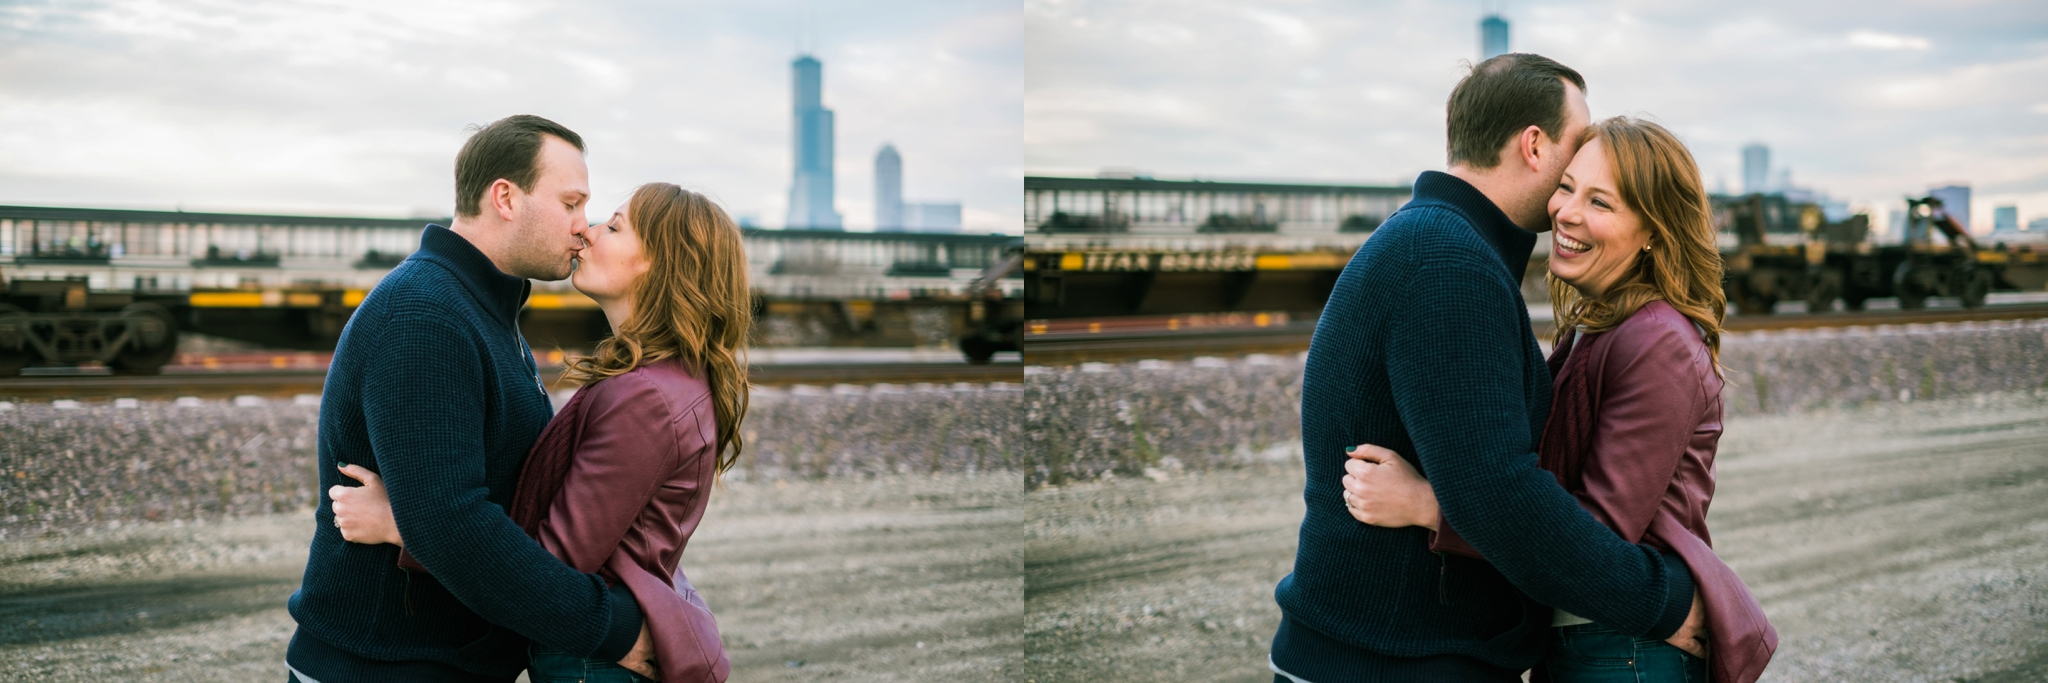 Pilsen-Engagement-Photography-068.jpg